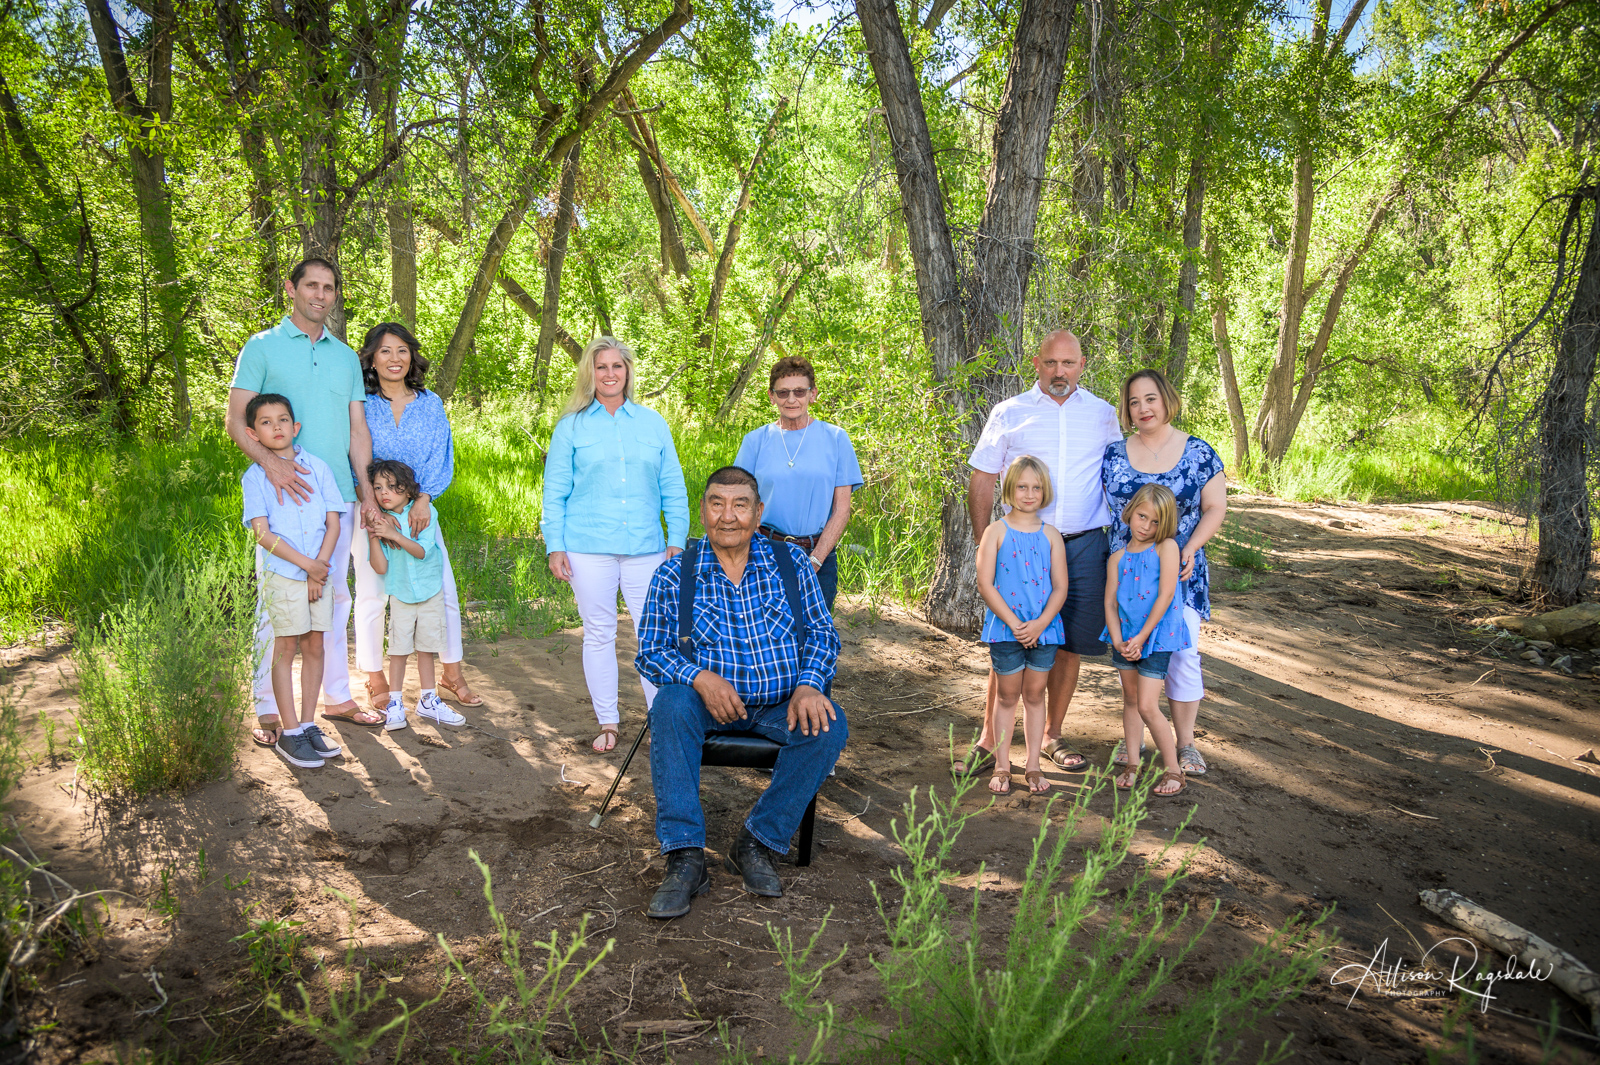 Kathy & Co. Family Pictures